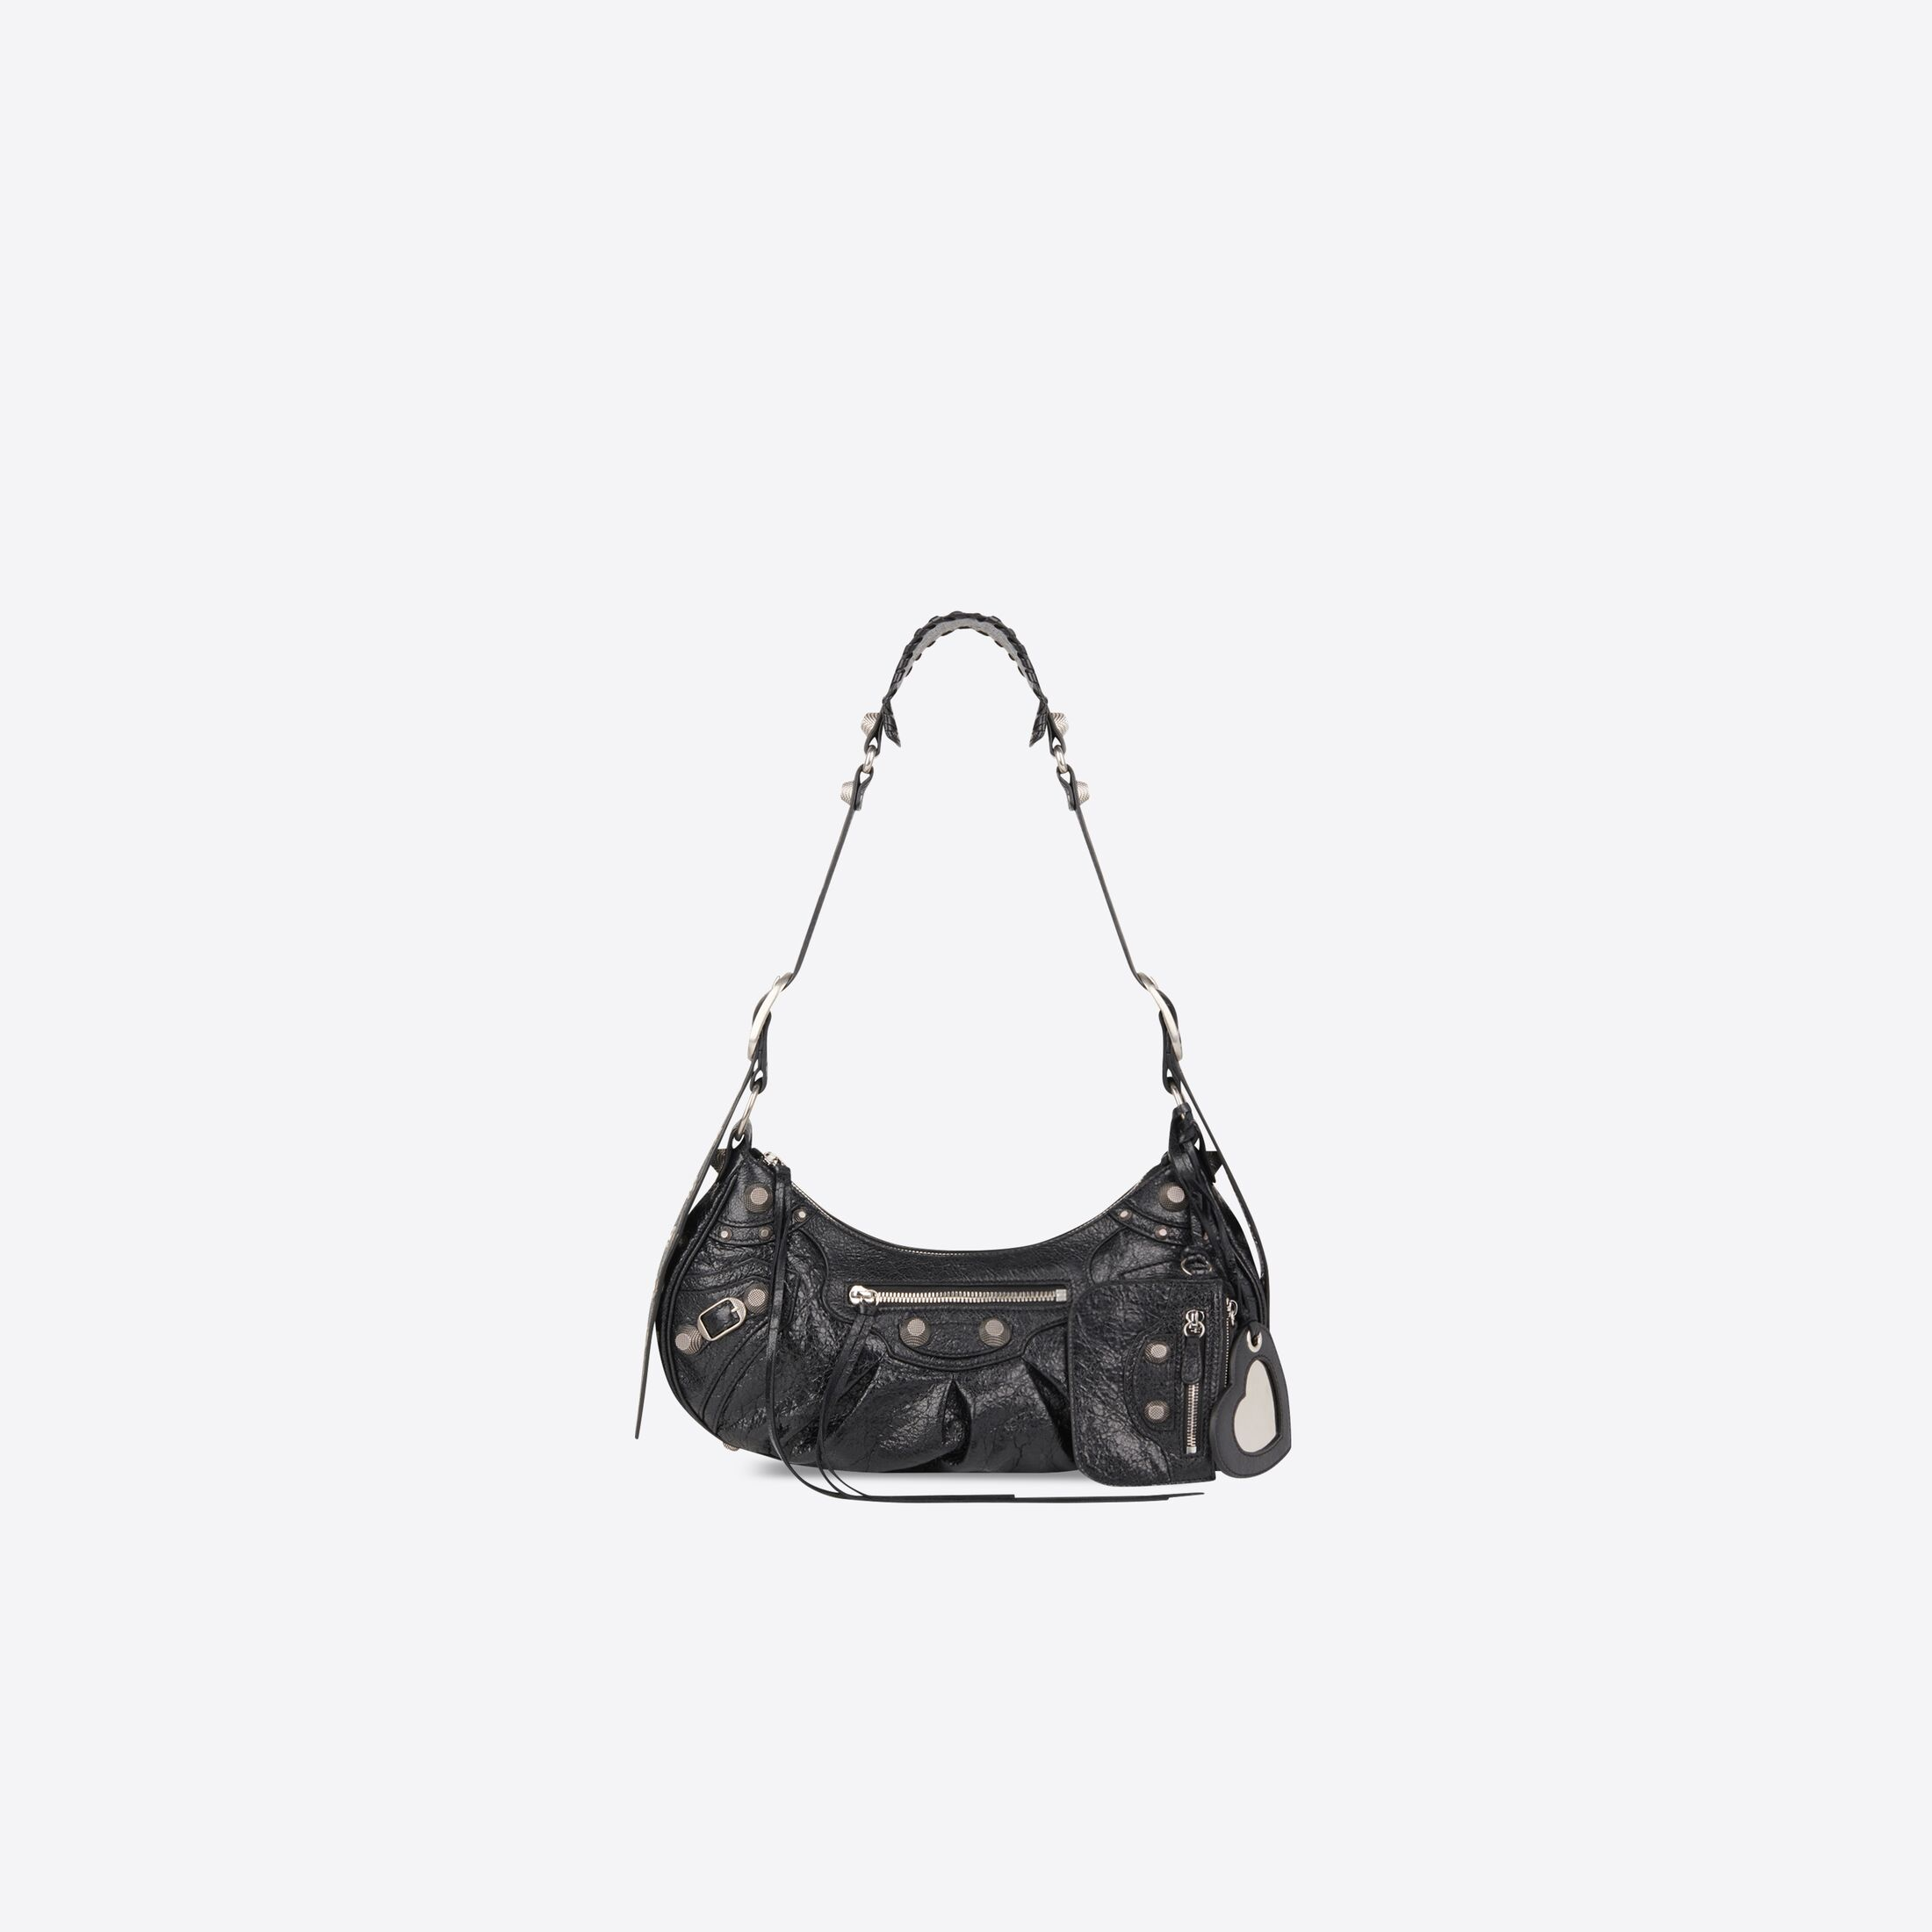 WOMEN'S LE CAGOLE SMALL SHOULDER BAG IN BLACK by Balenciaga, available on balenciaga.com for $1850 Bella Hadid Bags Exact Product